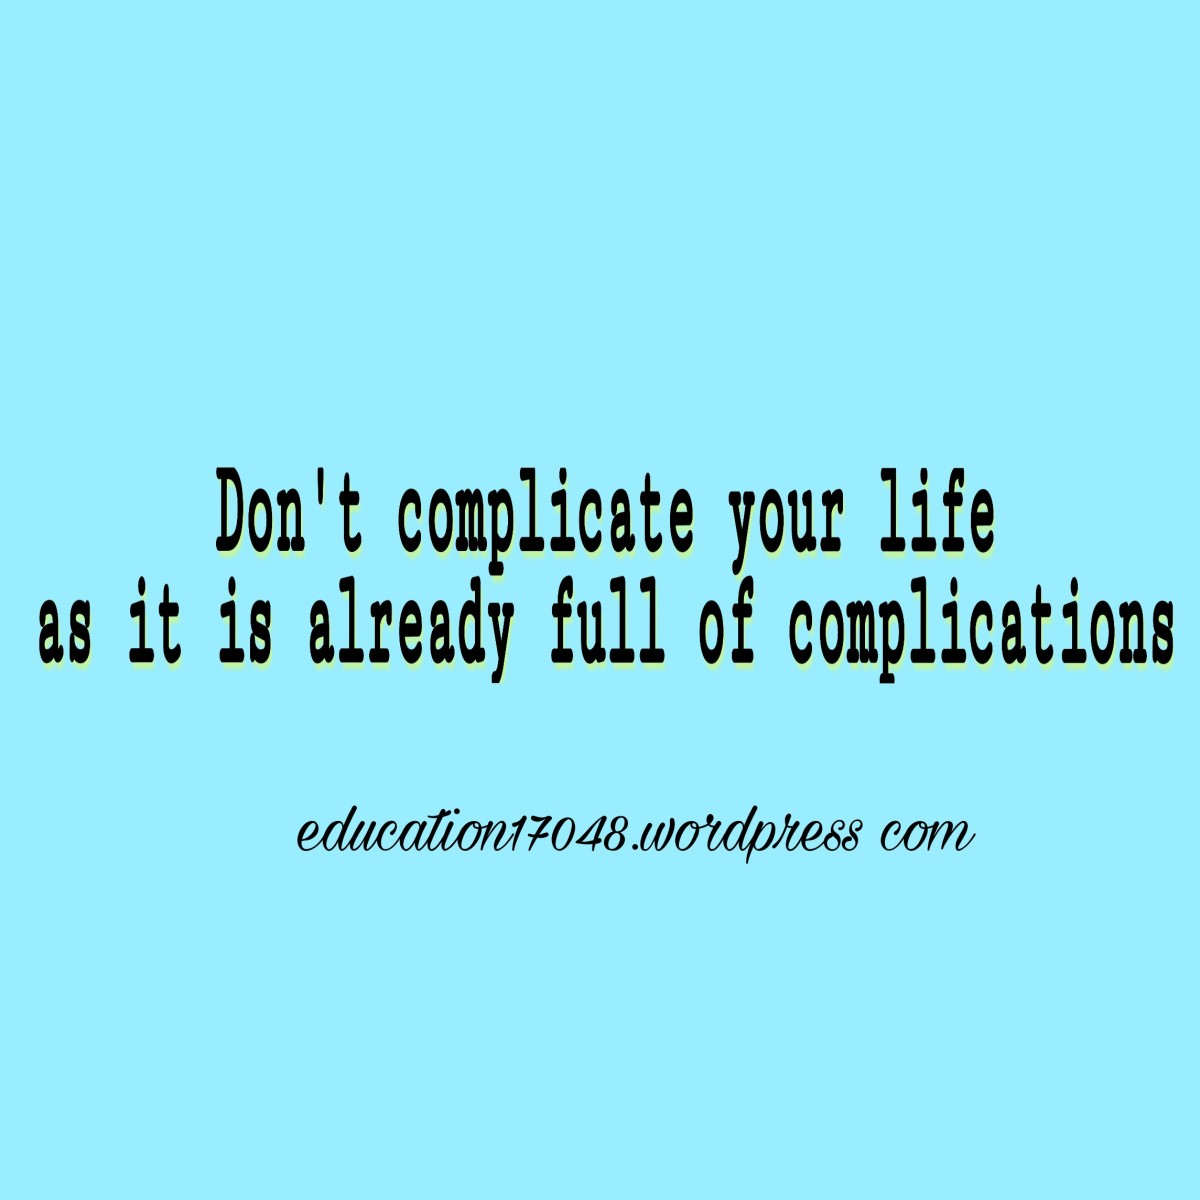 #life #motivation #experience #quotes